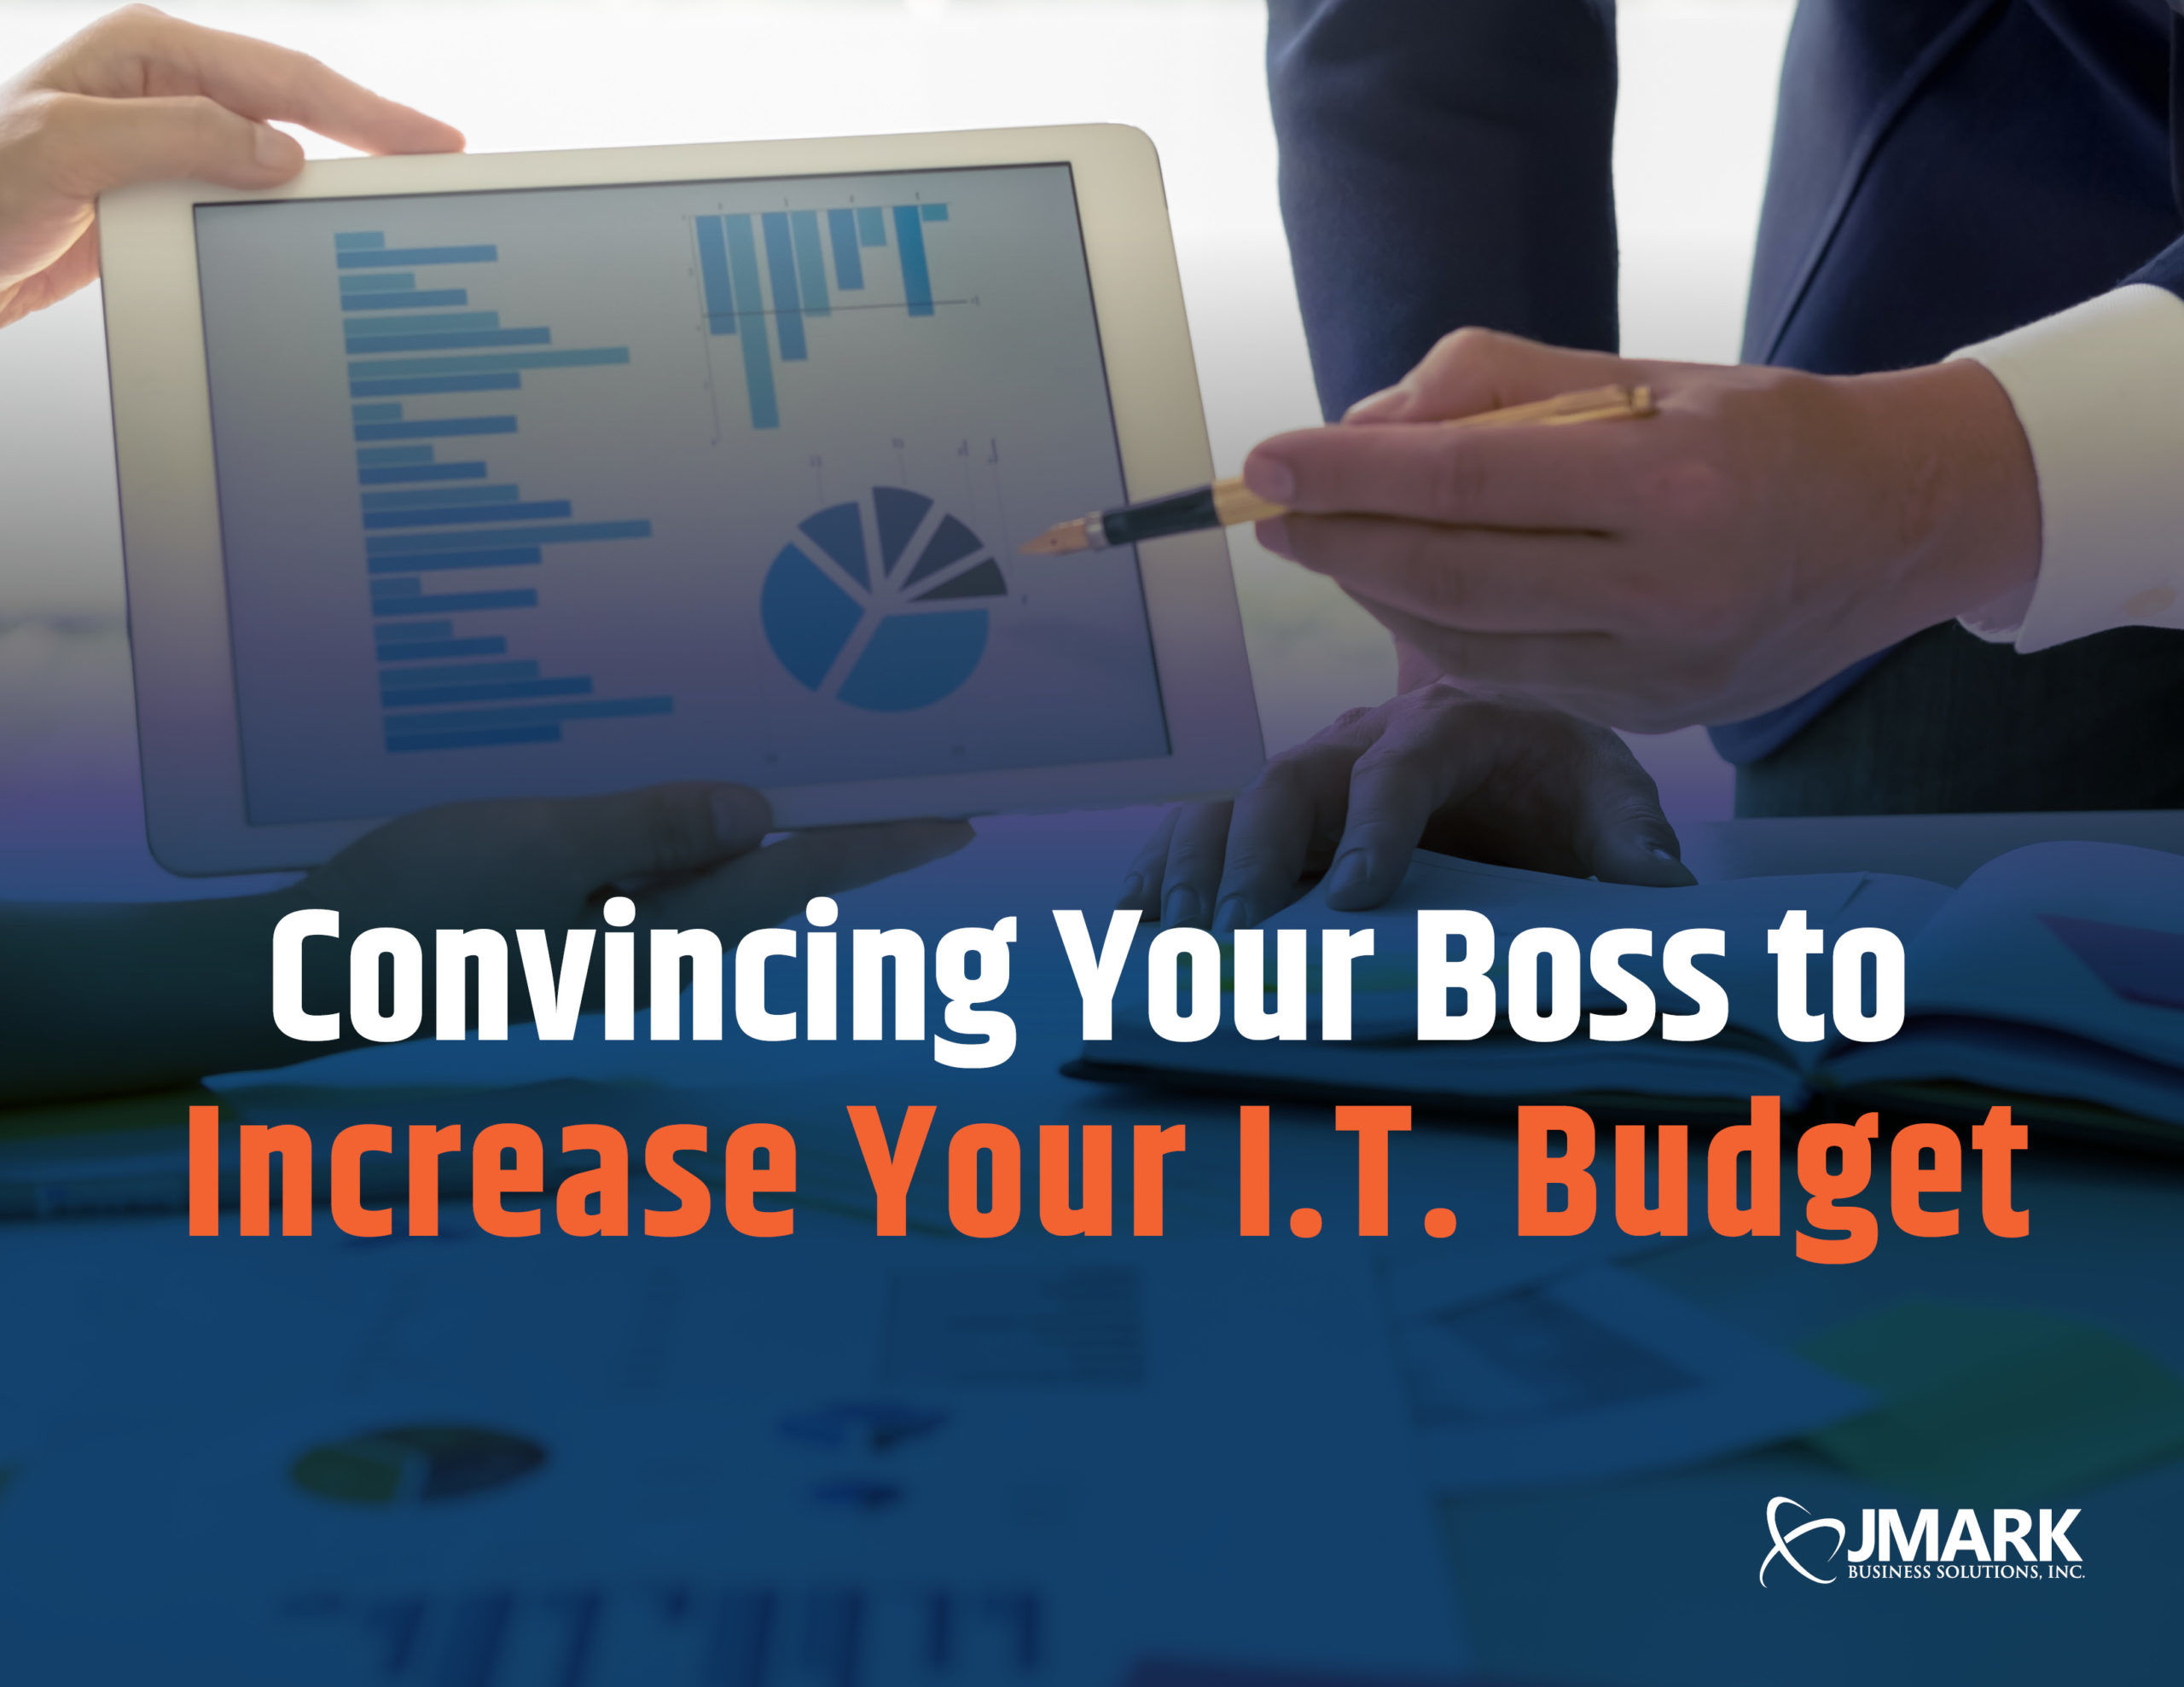 Convincing Your Boss to Increase Your IT Budget